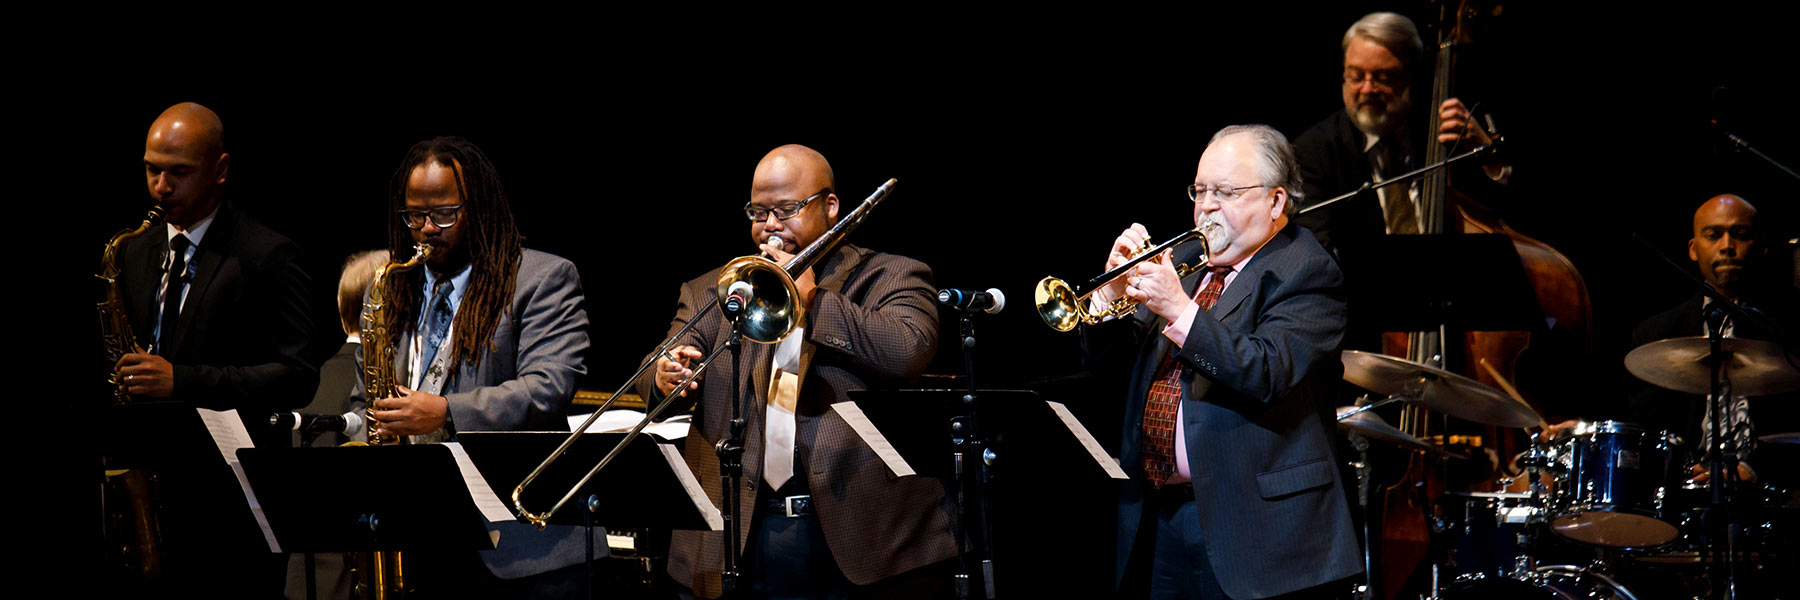 Faculty/Alumni Jazz Group performs Harlem Pipes during a celebration of the life of David N. Baker